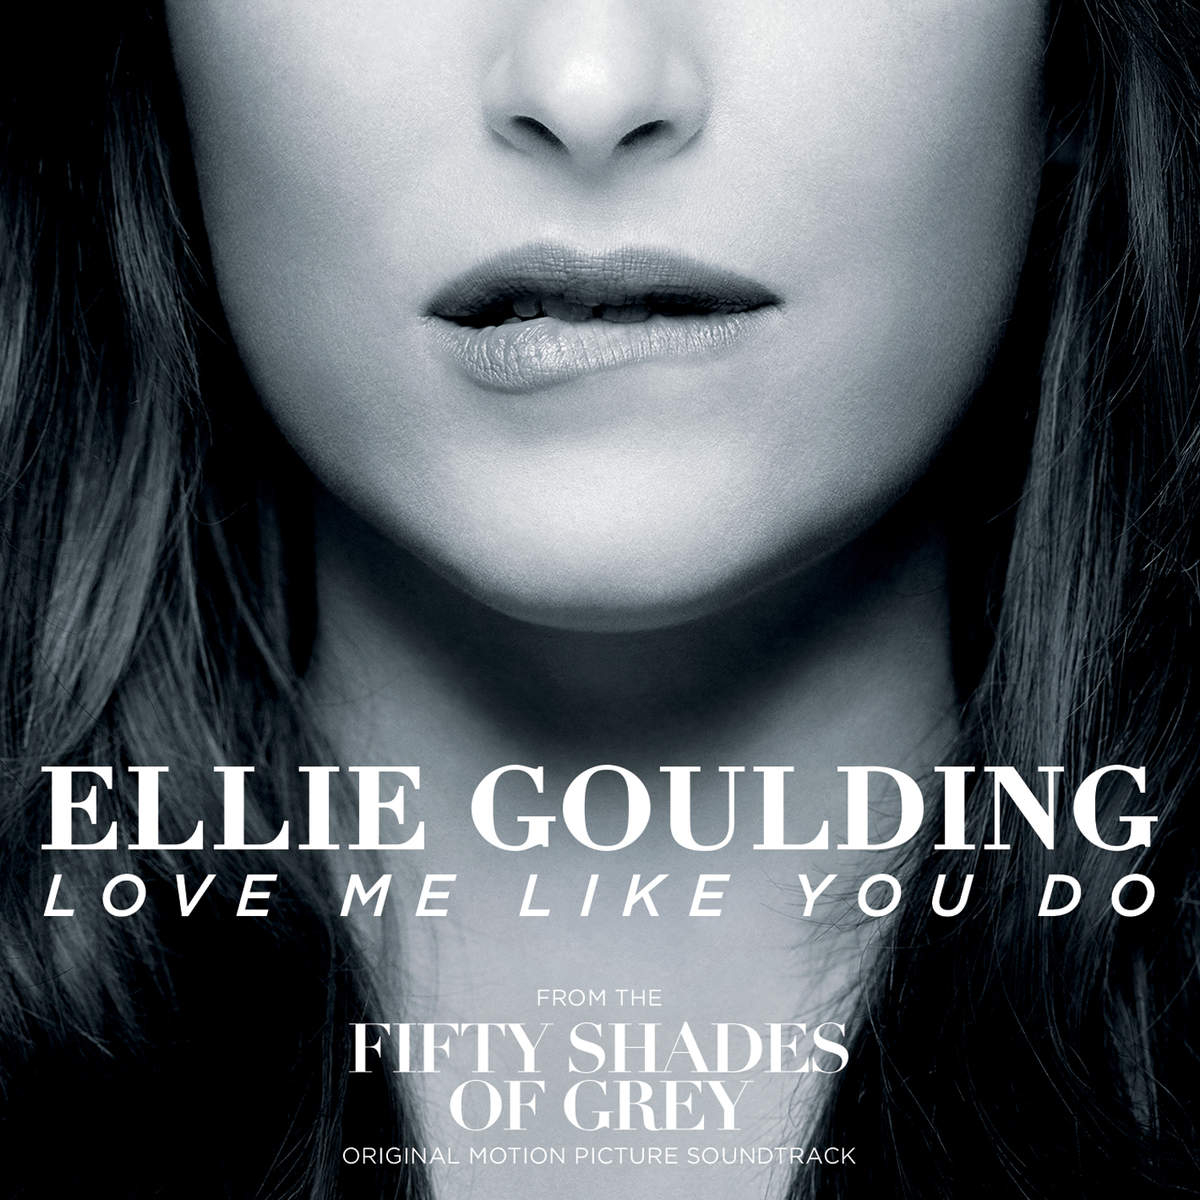 Love Me Like You Do Chords Love Me Like You Do Guitar Chords Ellie Goulding